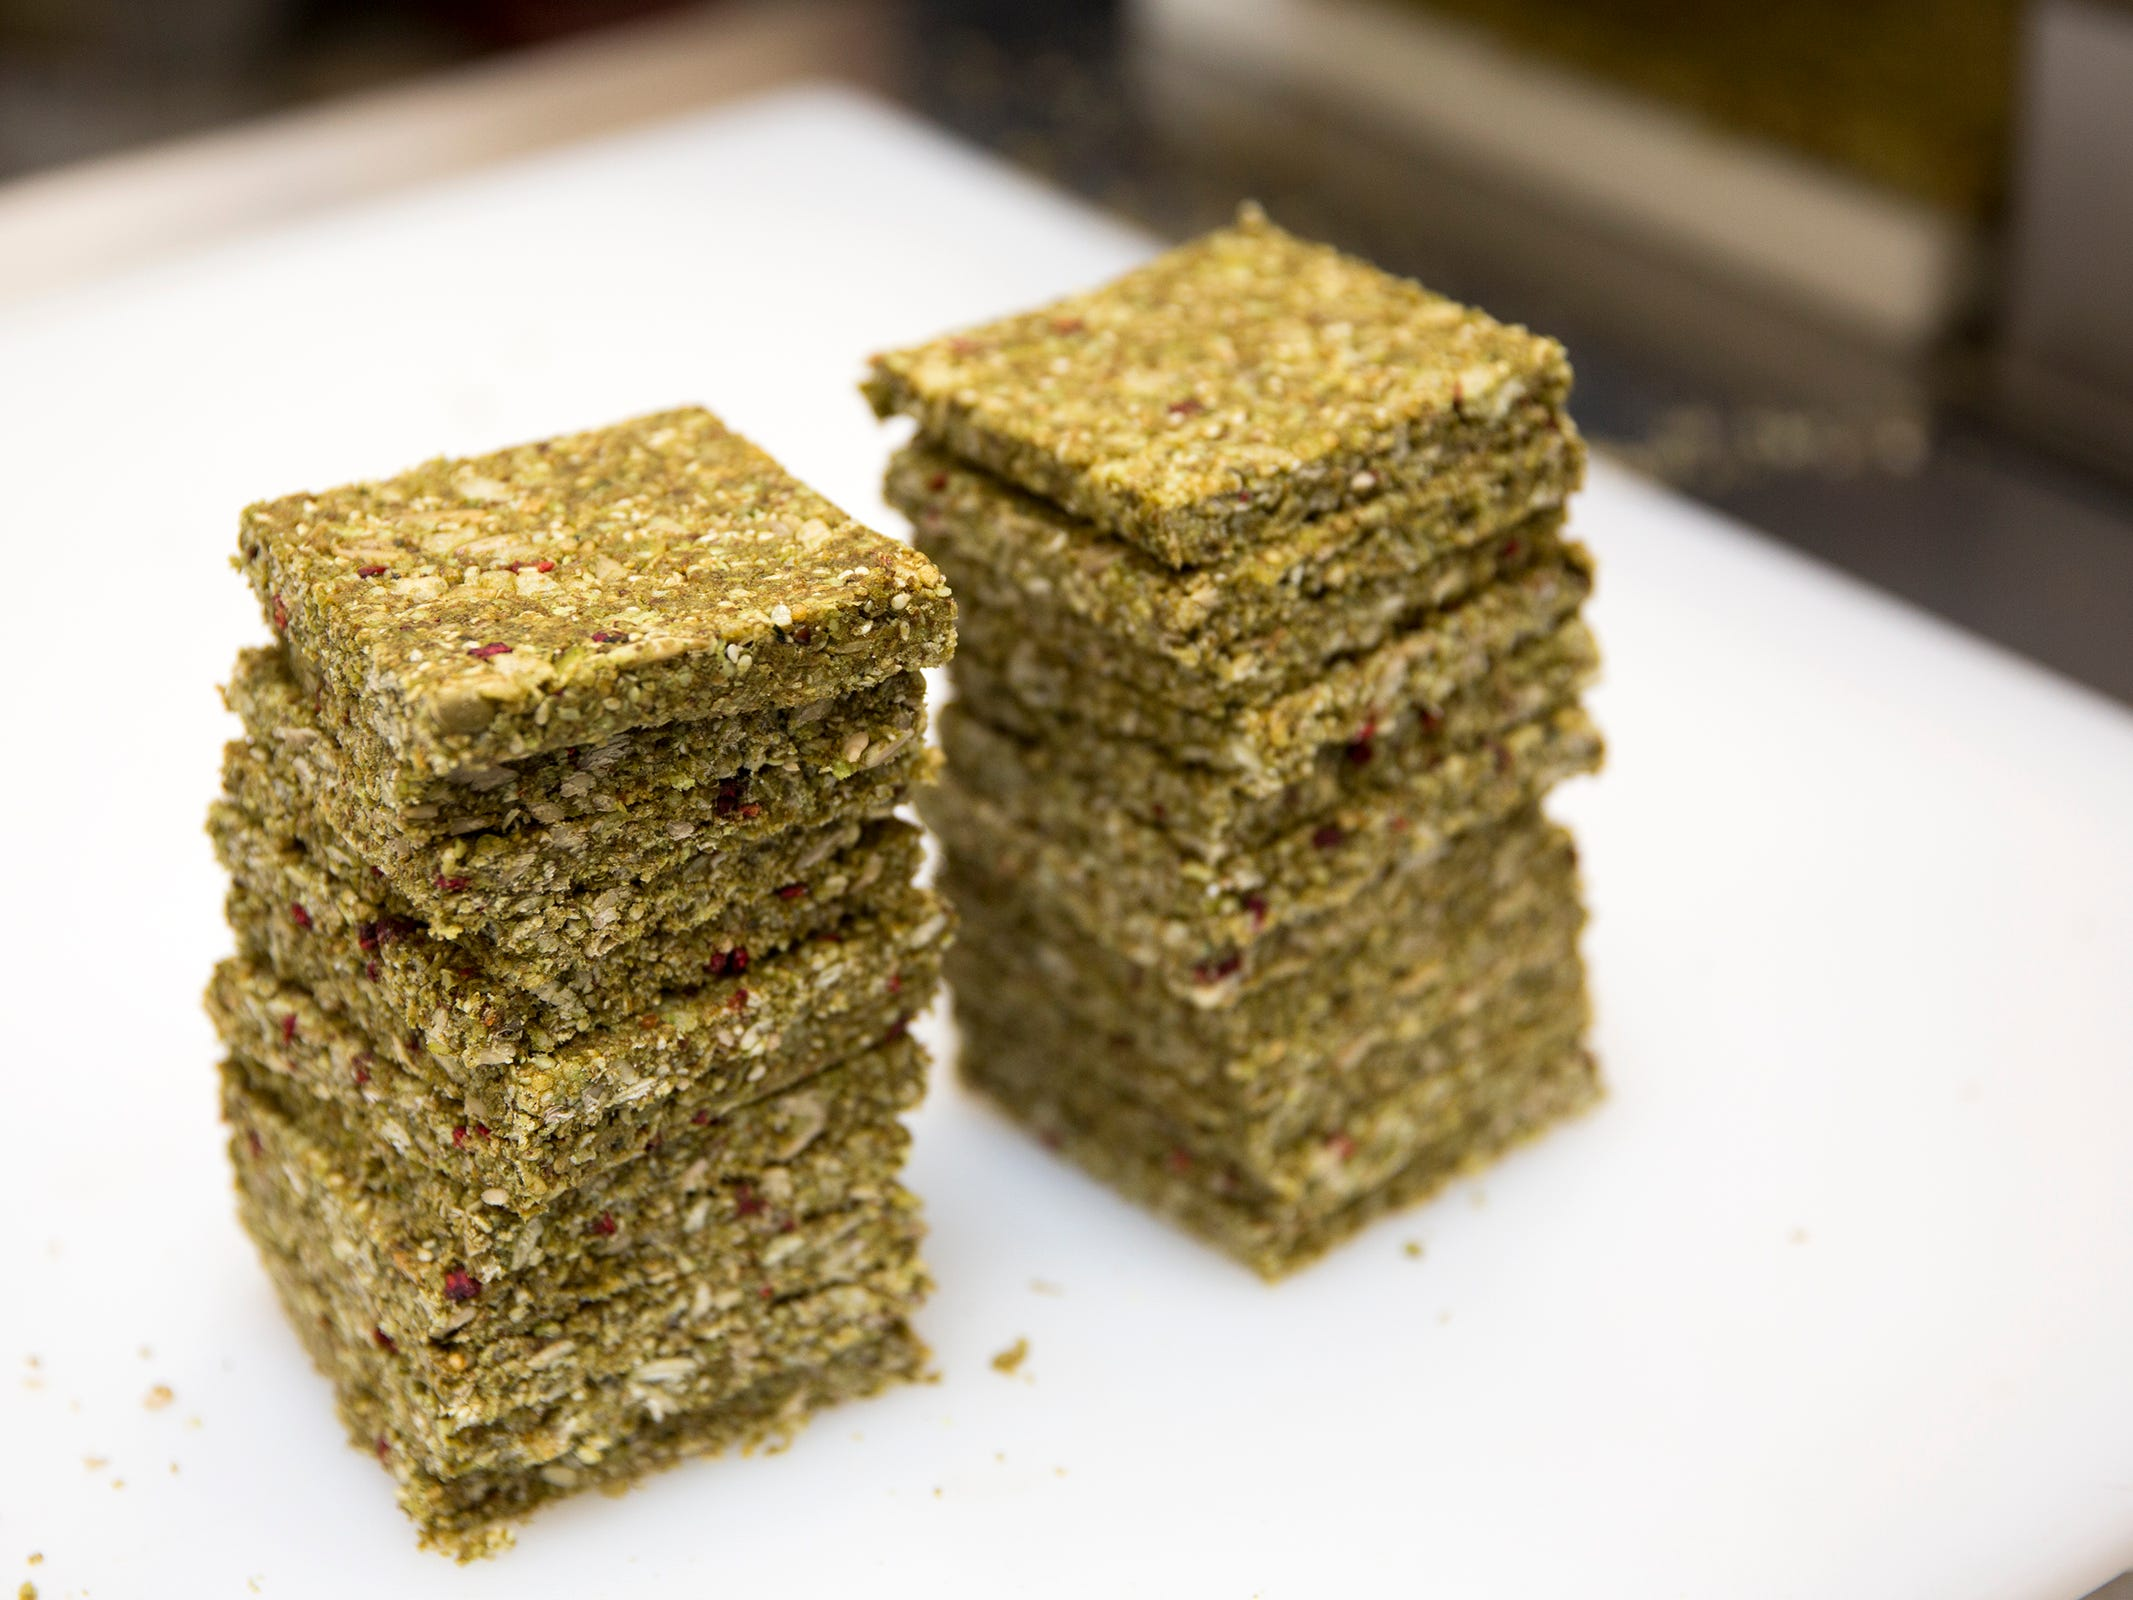 Raspberry kale maca-flavored LivBar organic energy bars are pictured in downtown Salem on Wednesday, Feb. 20, 2019.